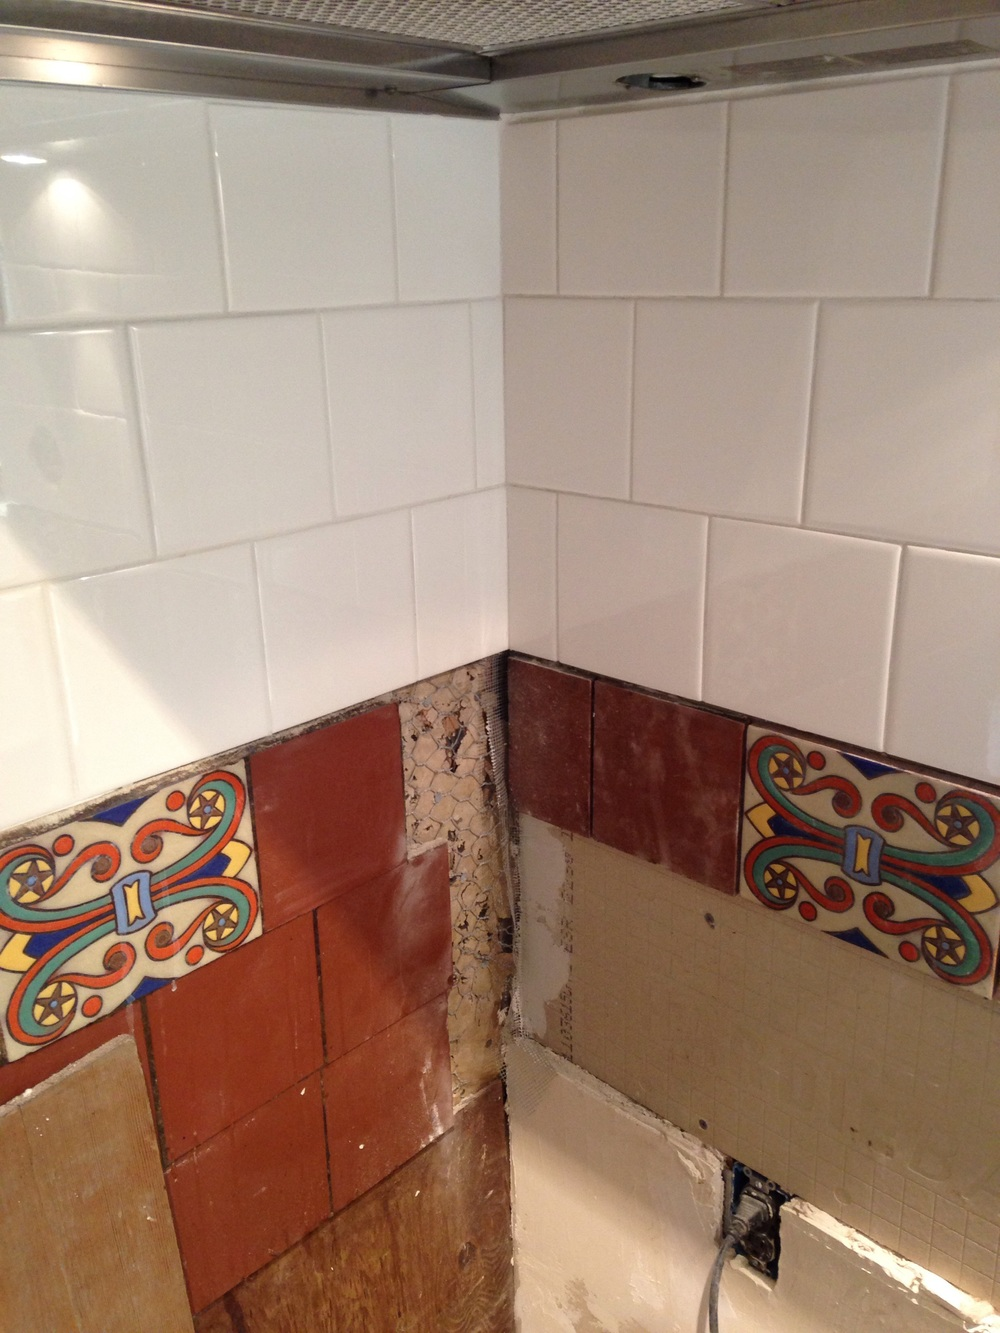 I had to carefully chip out the old mortar bed to reset the corner tiles since I moved the adjacent wall back